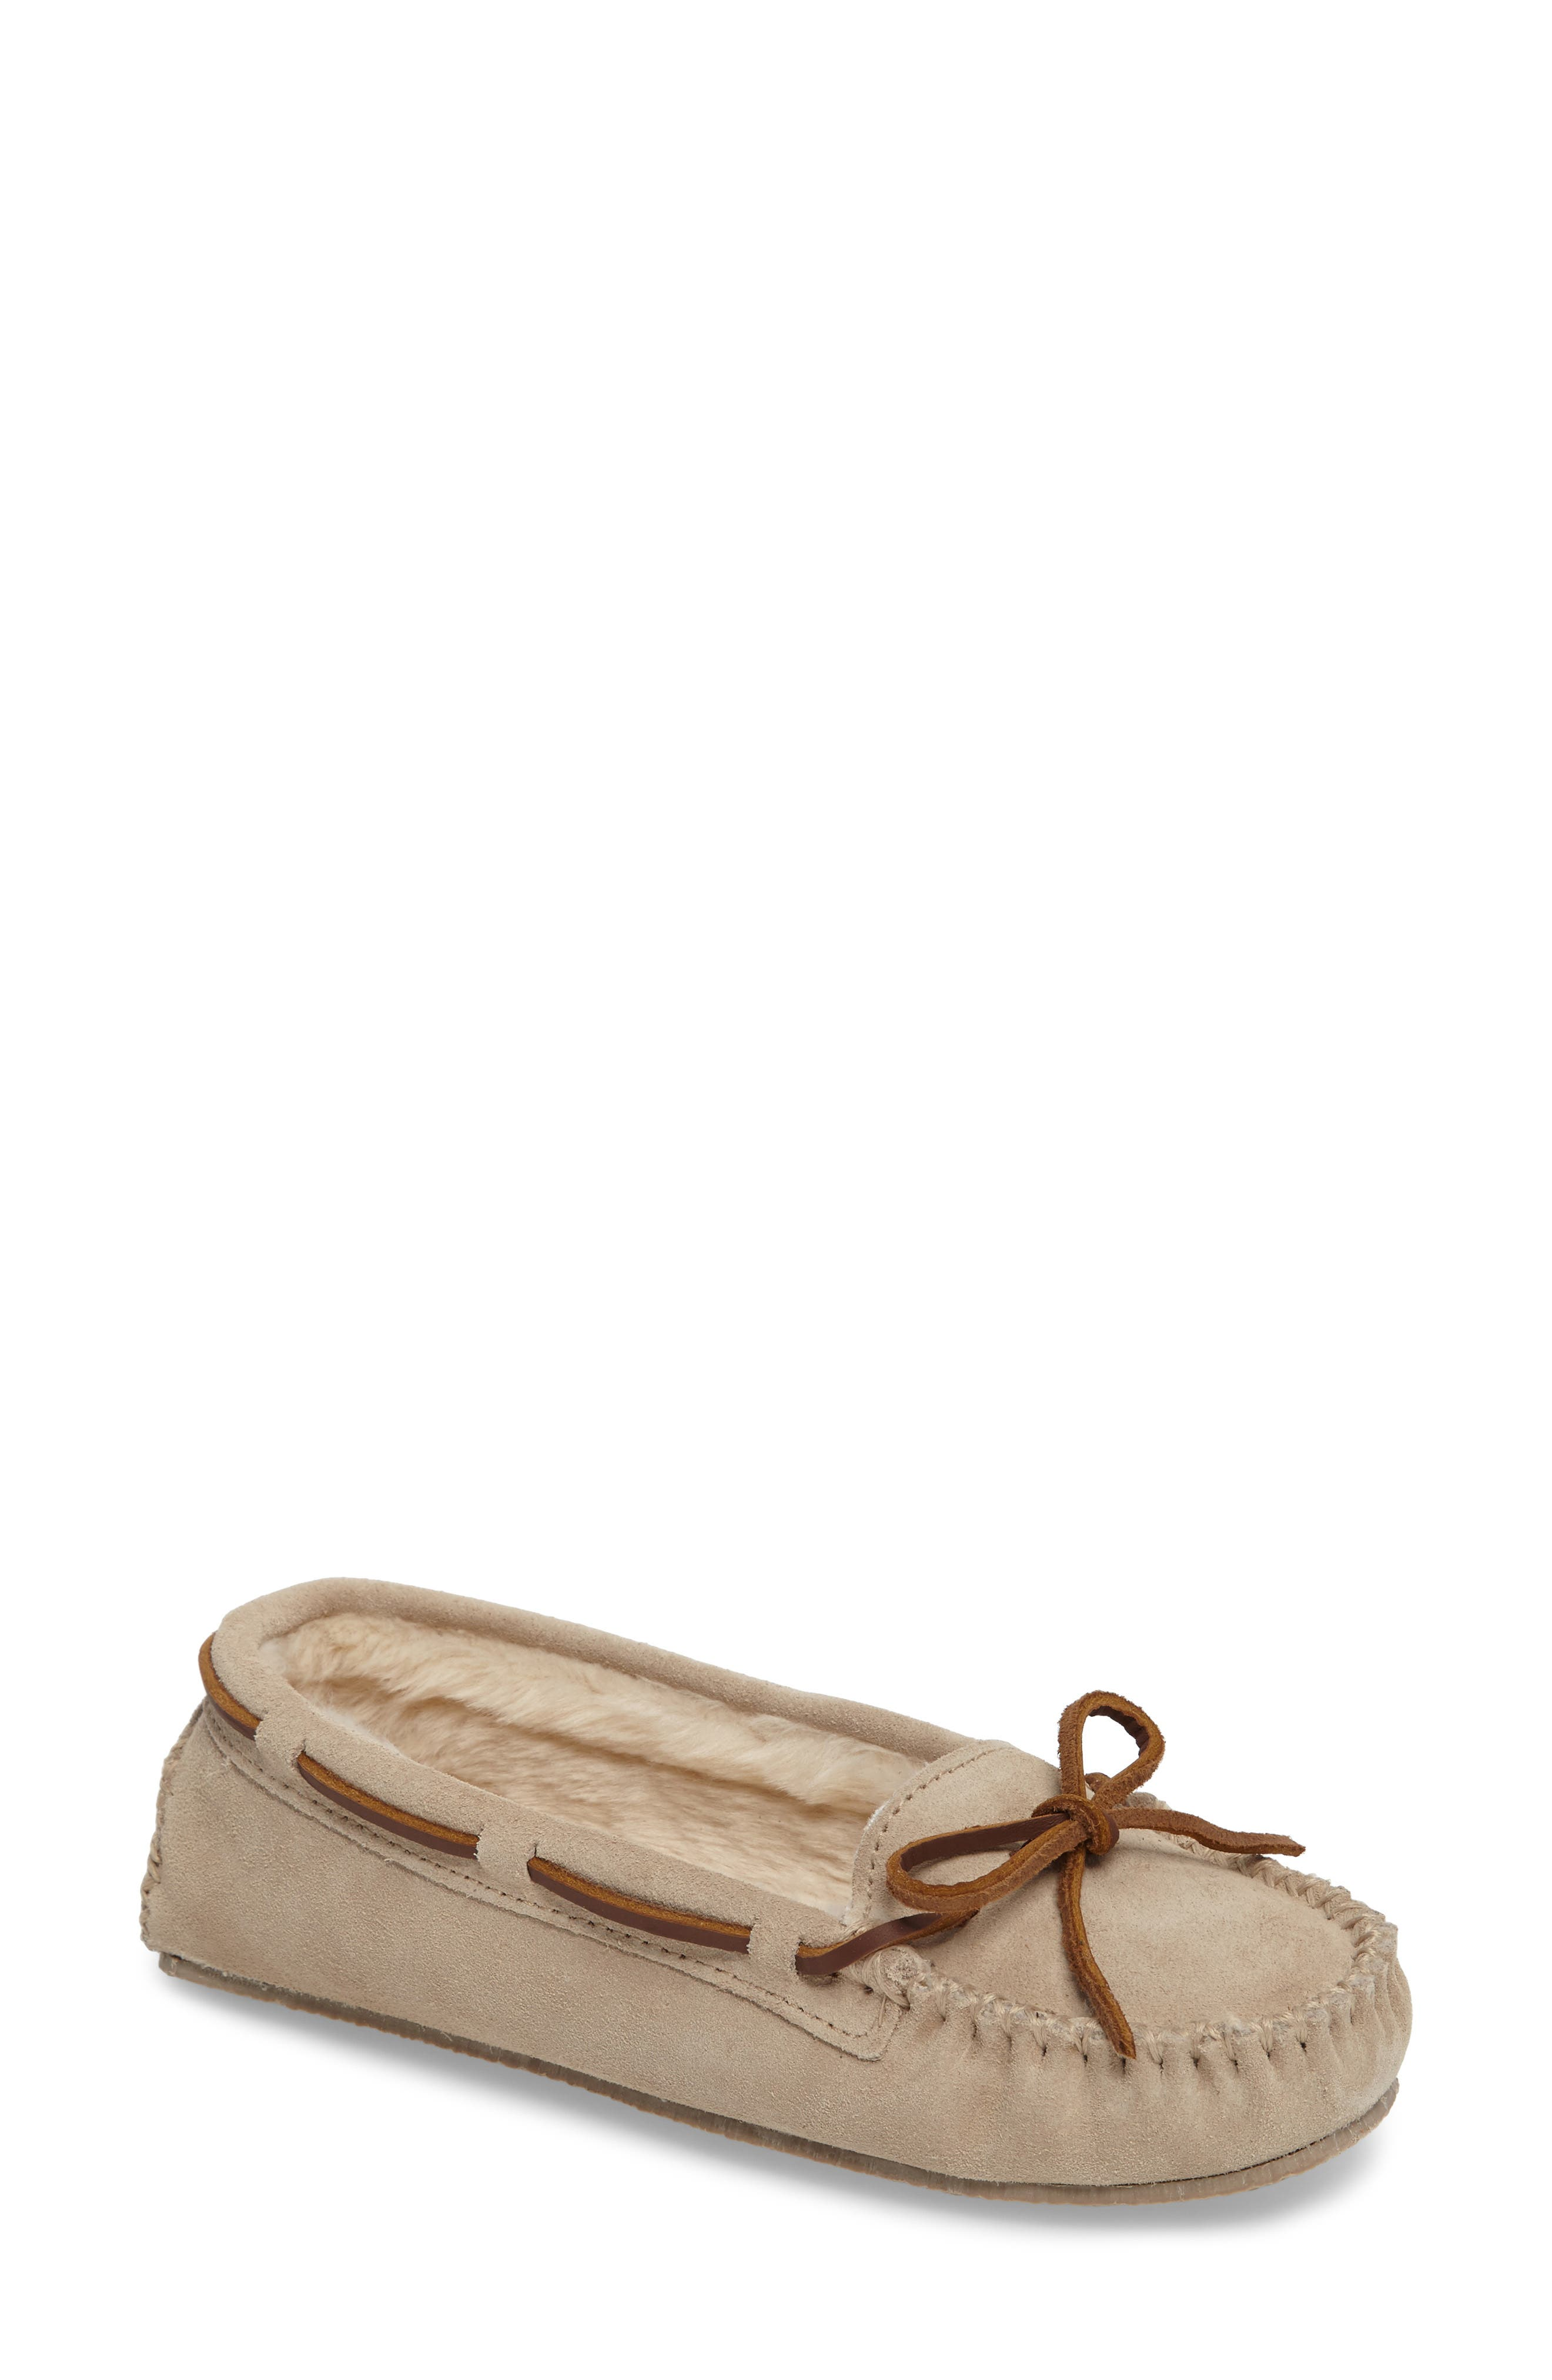 Main Image - Minnetonka 'Cally' Slipper